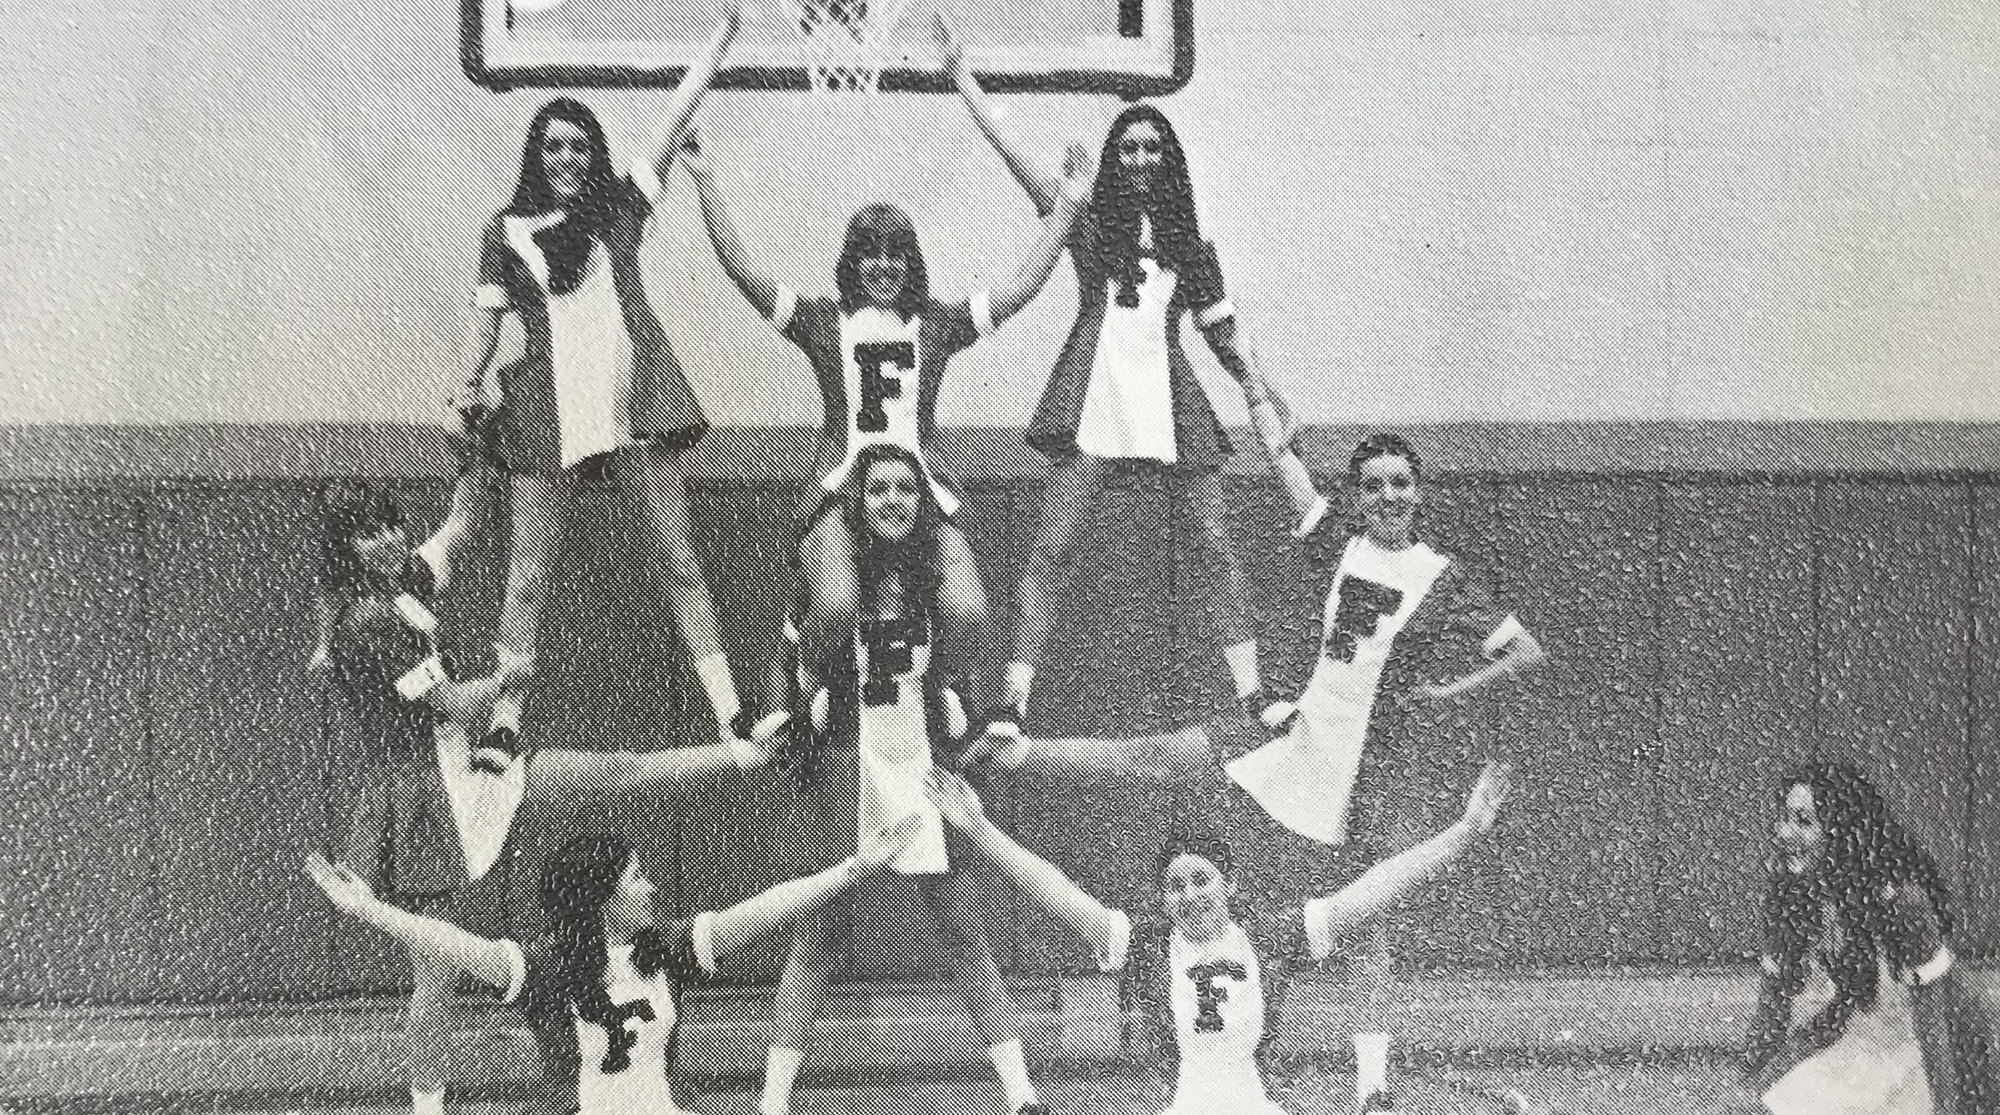 a7a3d7891 St. Francis Alumna Diane Trapp '75 Reflects on Inaugural Cheerleading Squad